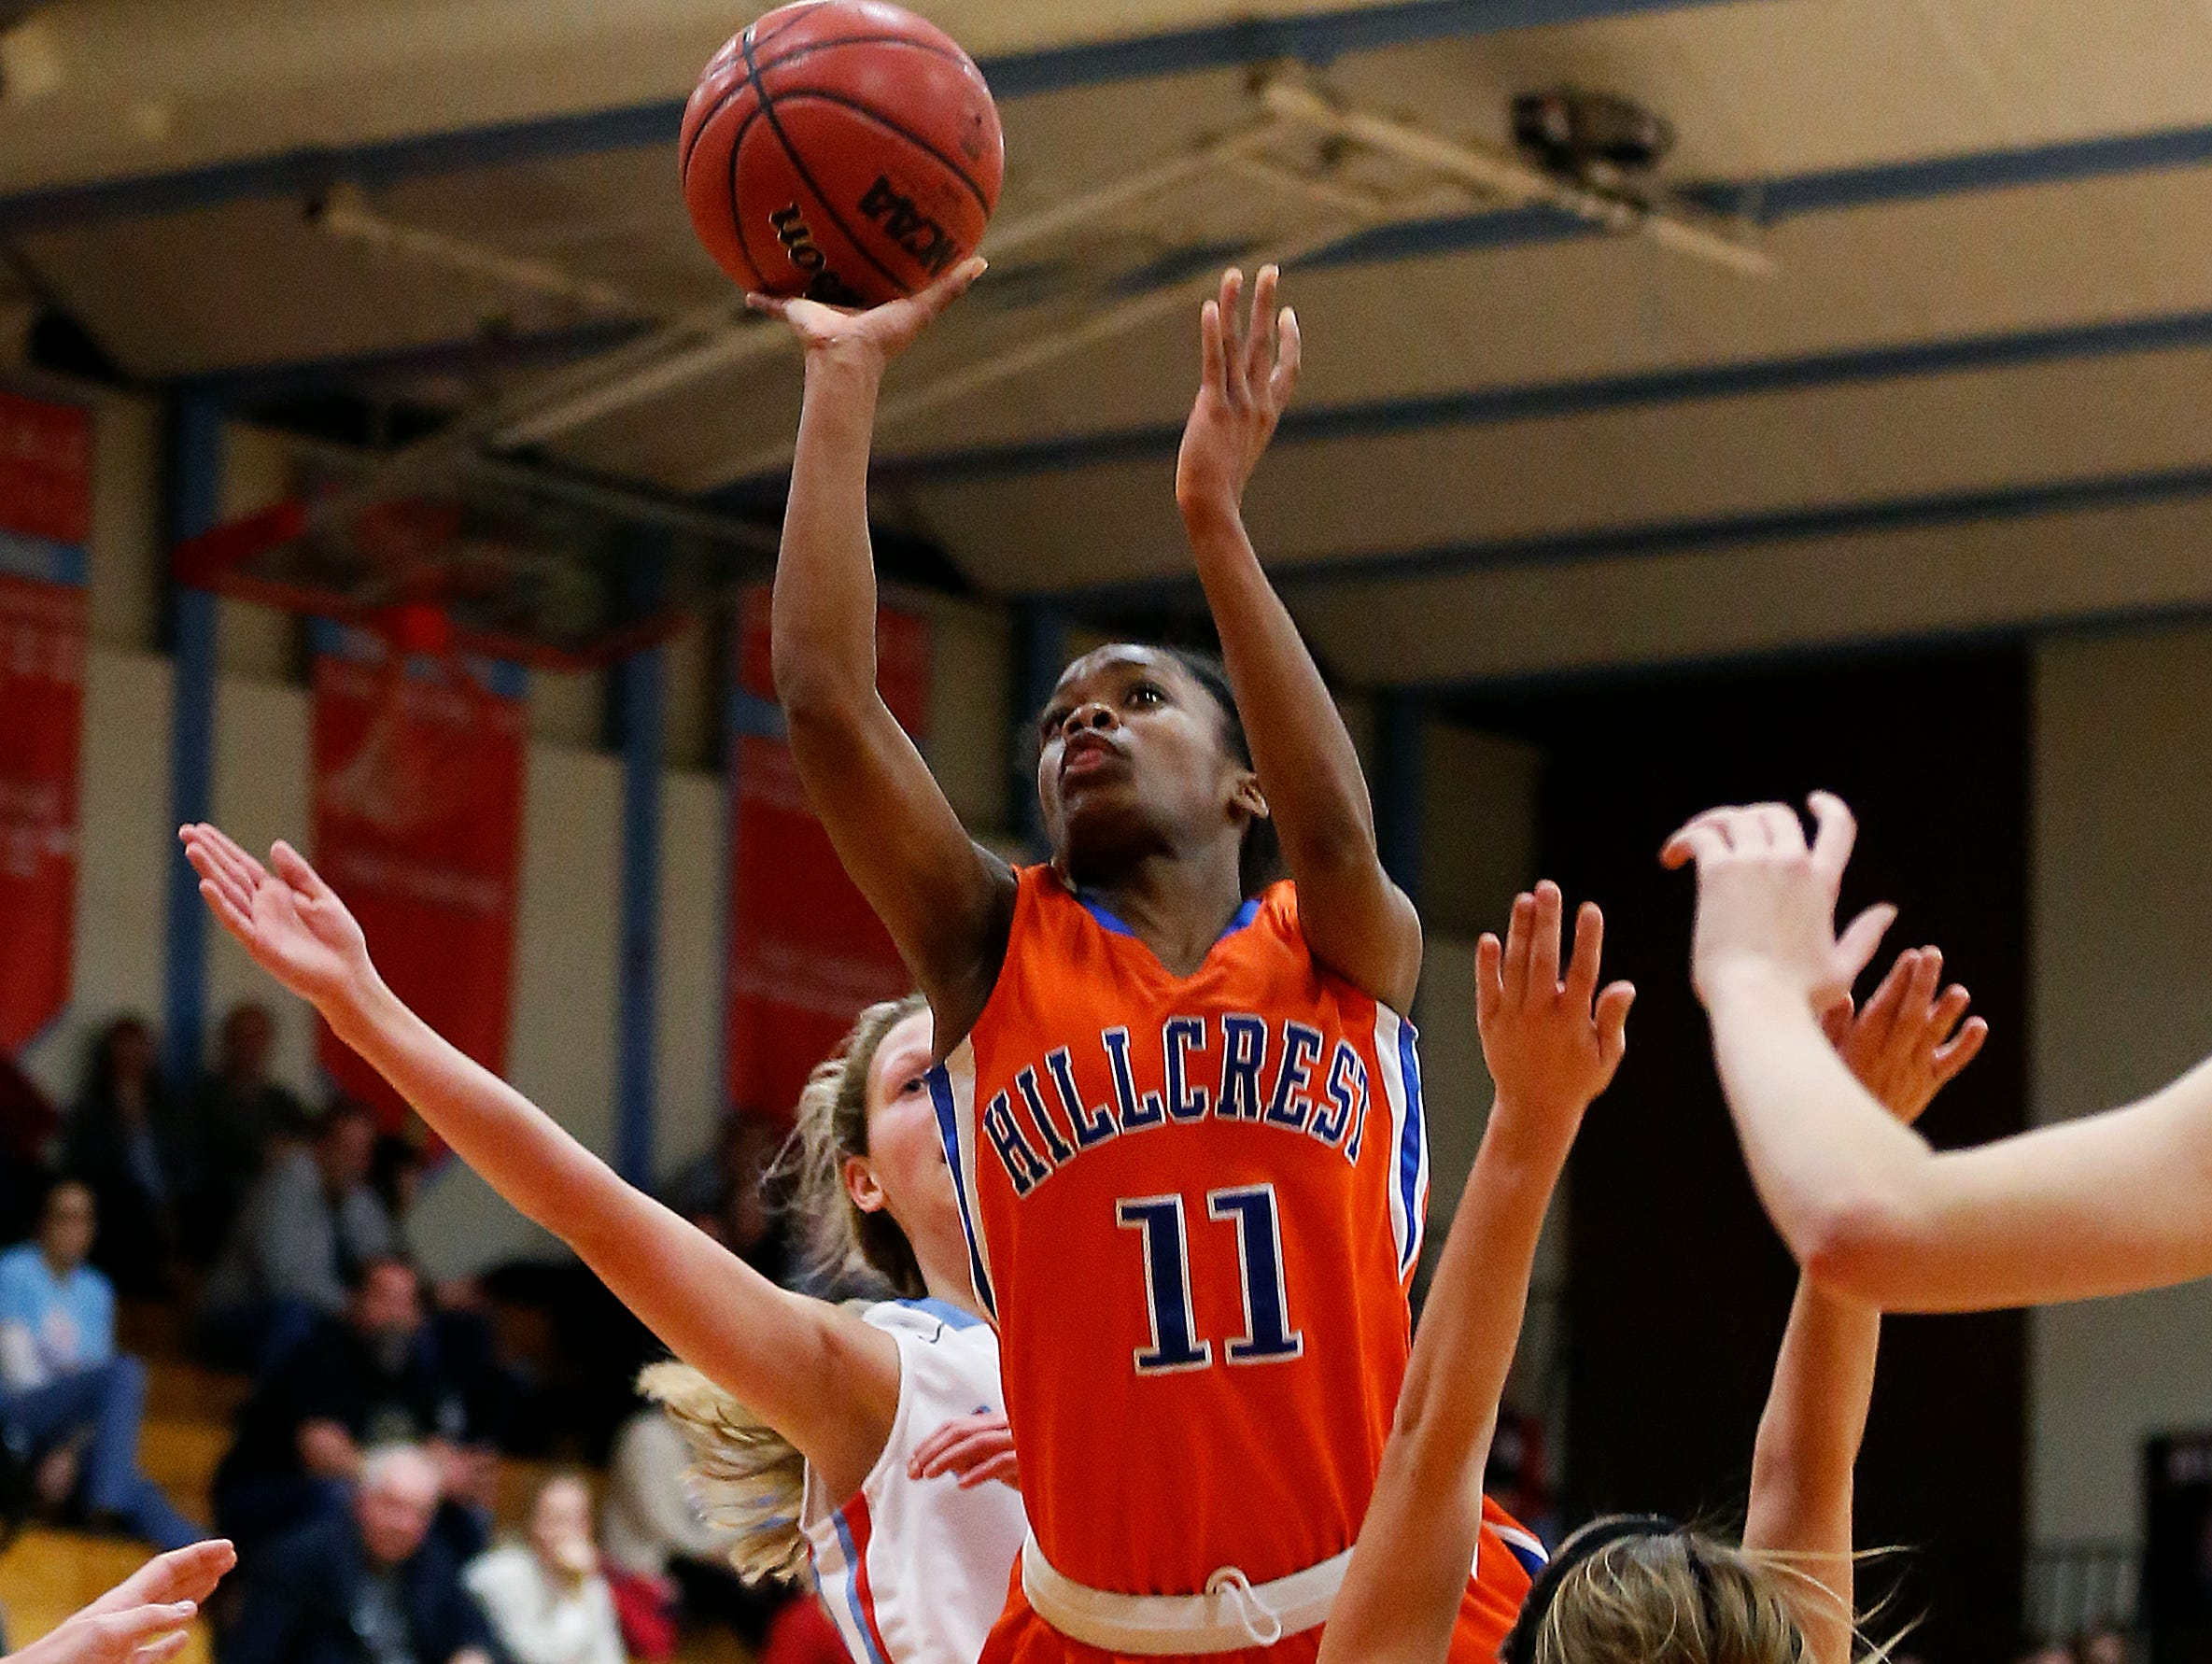 Hillcrest High School senior Kaycee Gerald (11) shoots between two Falcons defenders during third quarter action of the Hornets' game against Glendale High School at Glendale High School in Springfield, Mo. on Jan. 7, 2015. The Hornets won the game 49-39.